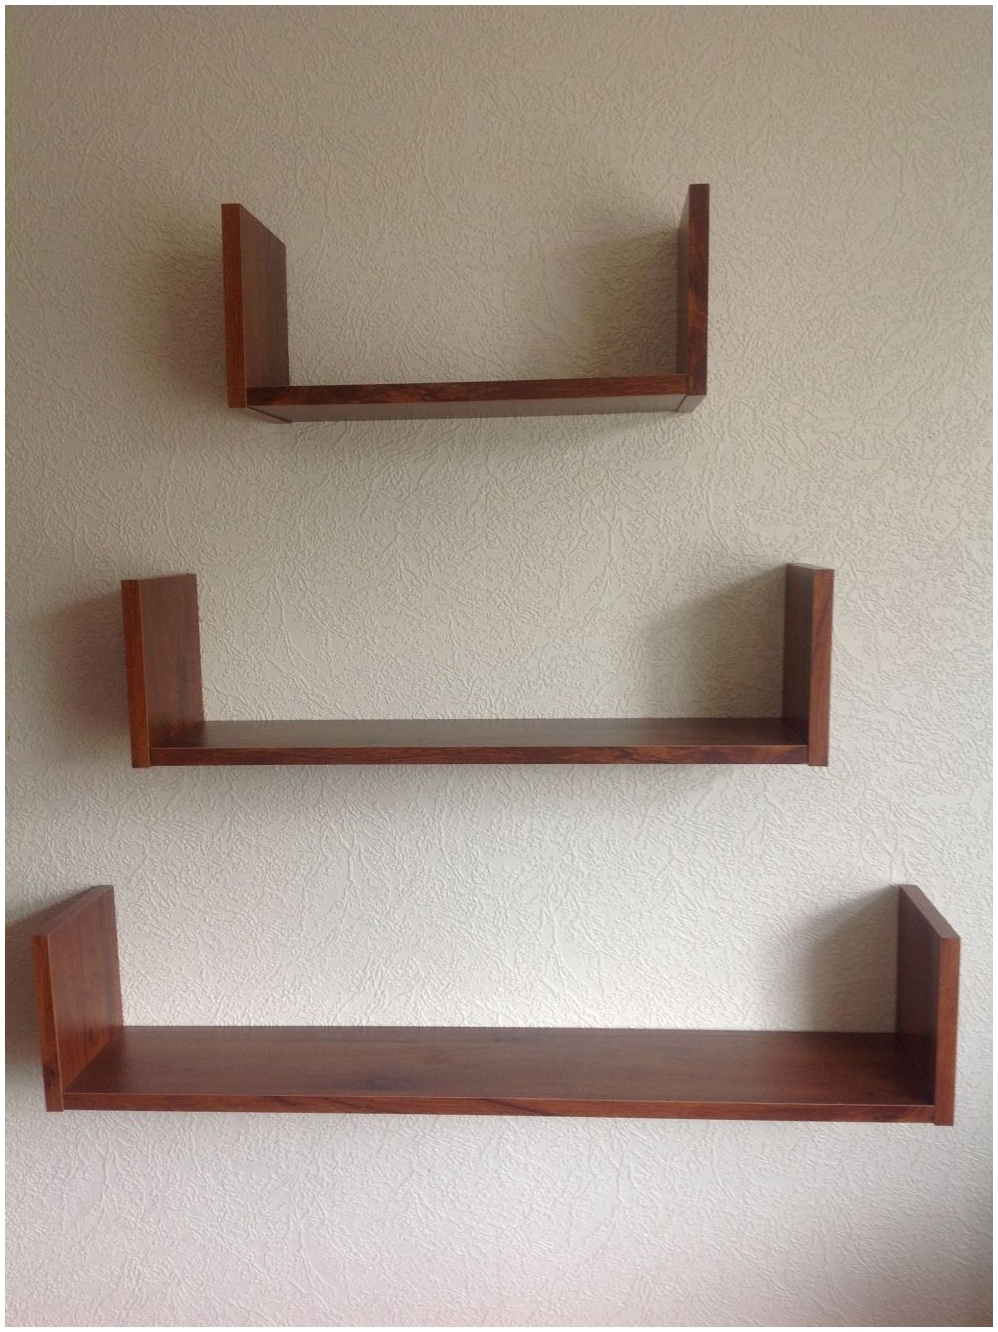 Wall Shelves Design Wall Mount Book Shelves For Sale Wall Mount Throughout Wall Mounted Shelves (#12 of 12)